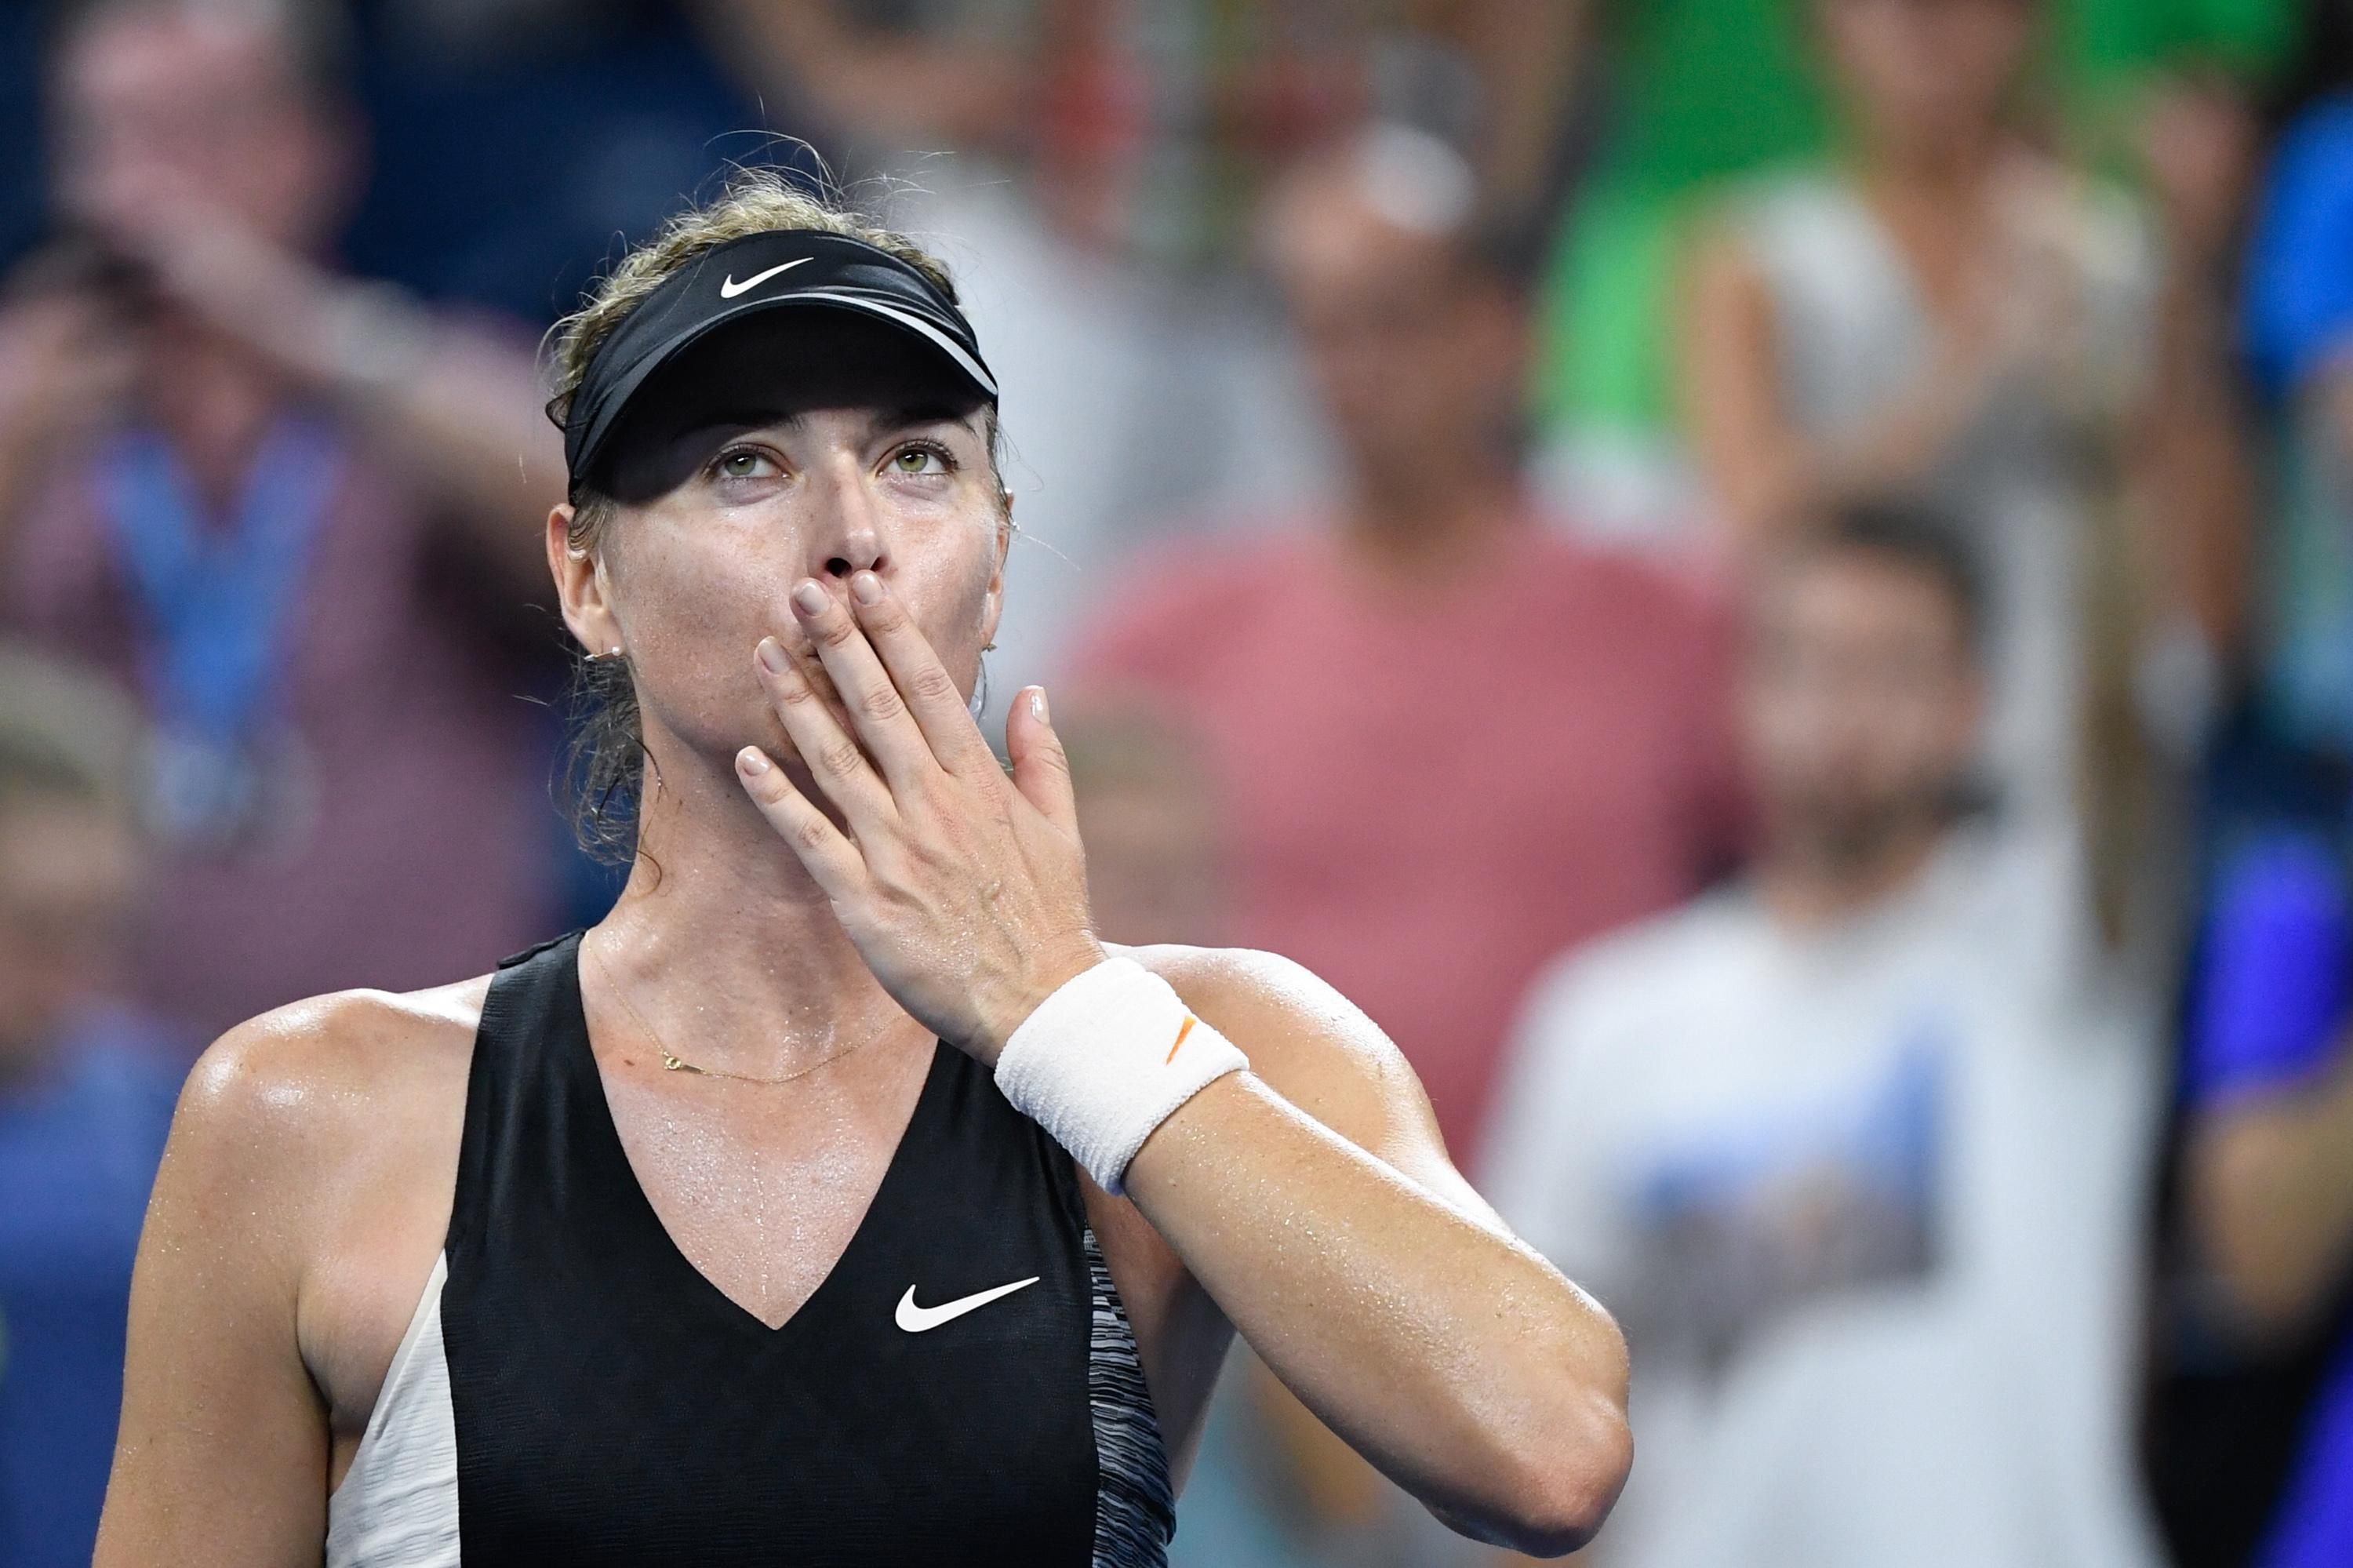 Maria Sharapova blows a kiss to the crowd after defeating Patty Schnyder